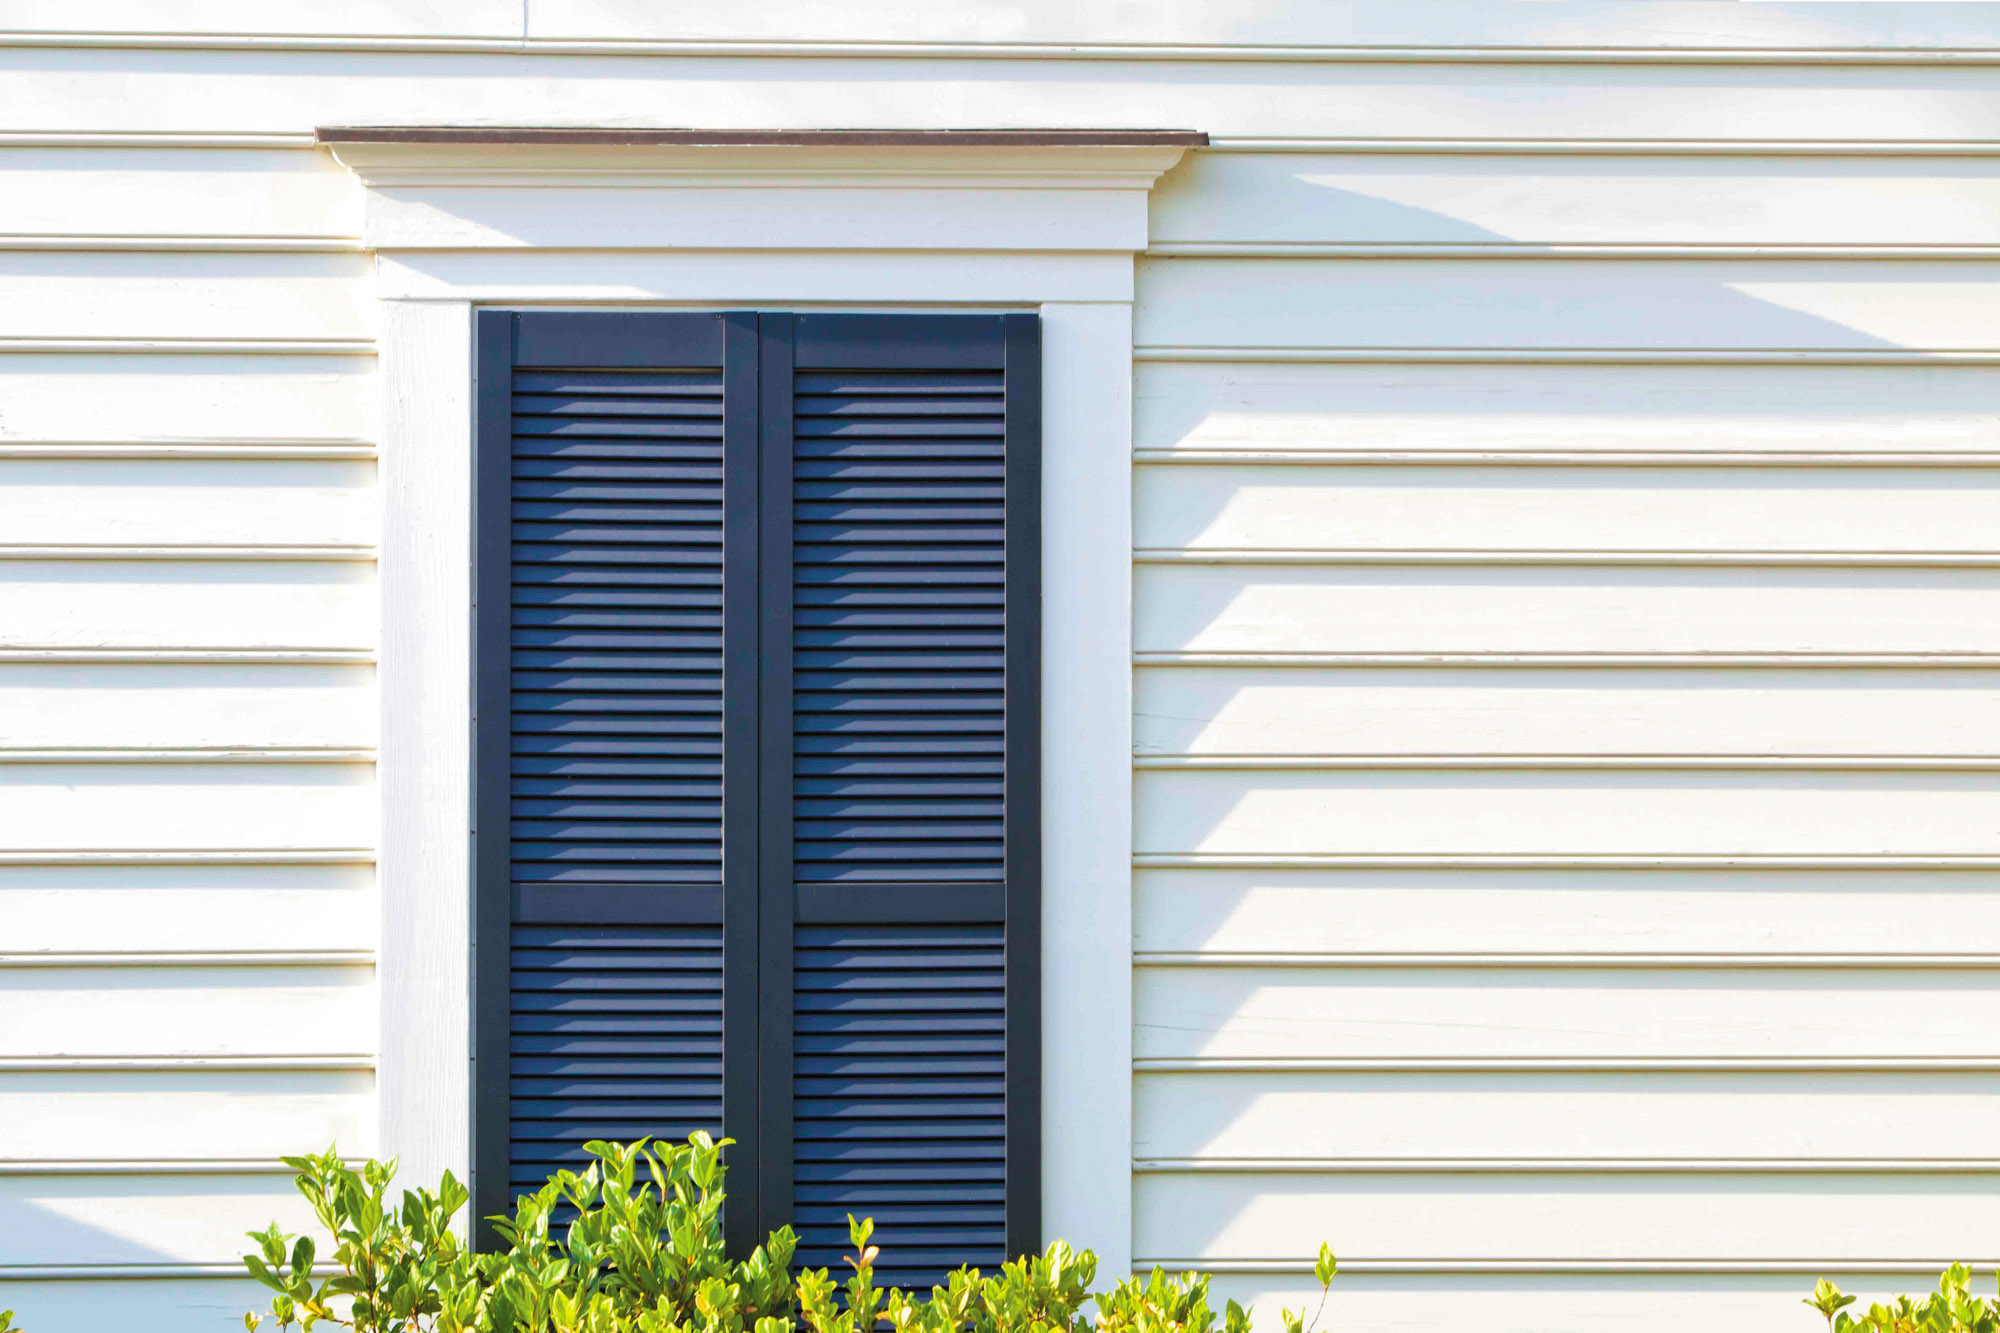 A good set of shutters not only looks authentic in materials and scale (like these from Aeratis), but also closes tightly to protect the window.